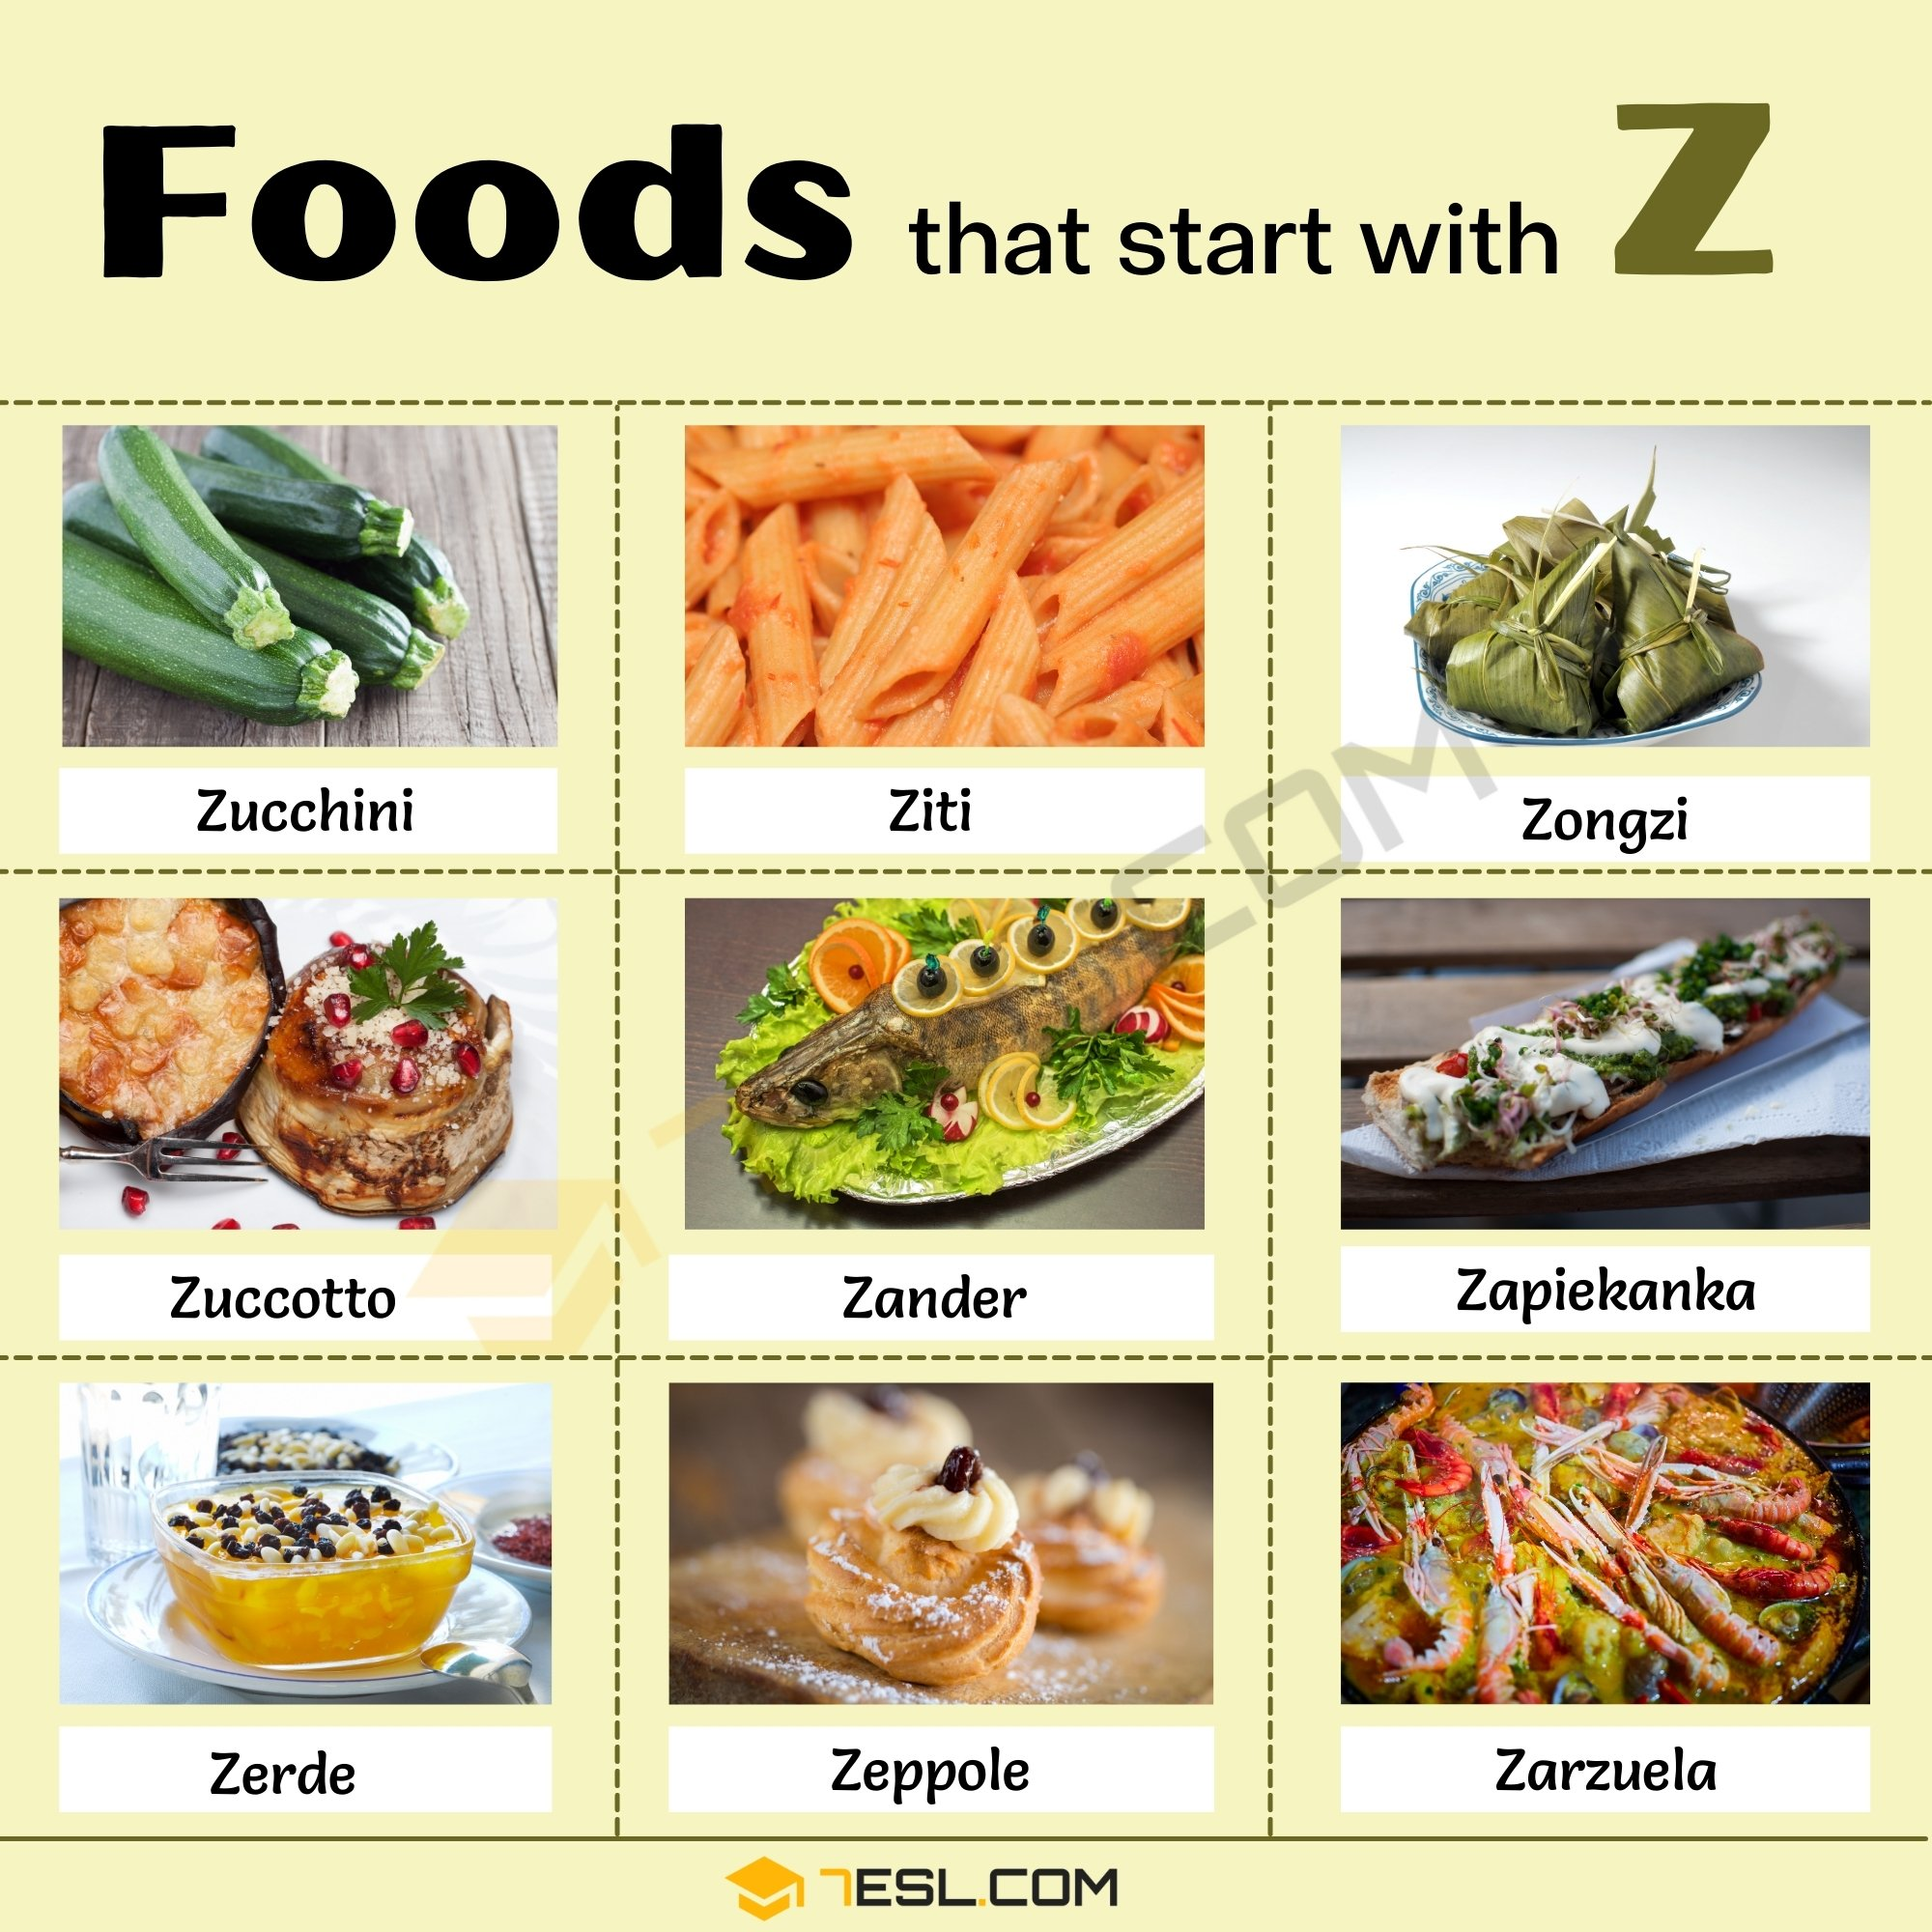 Foods That Start with Z